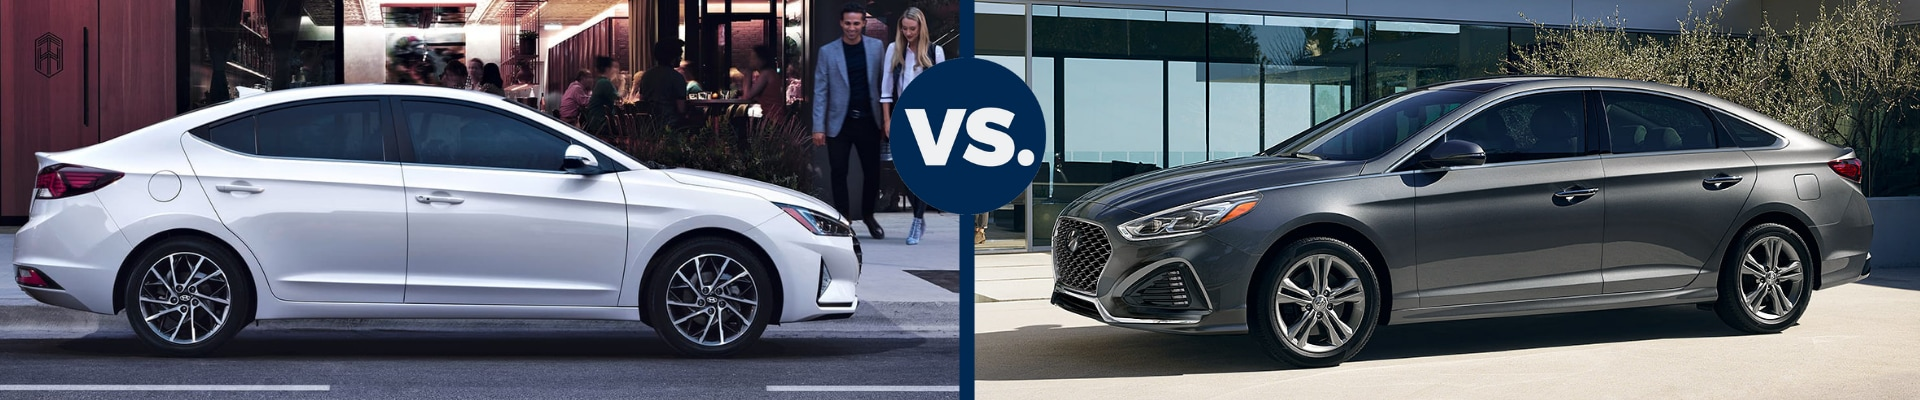 Head to head comparison of the 2019 Hyundai Elantra vs the 2019 Hyundai Sonata